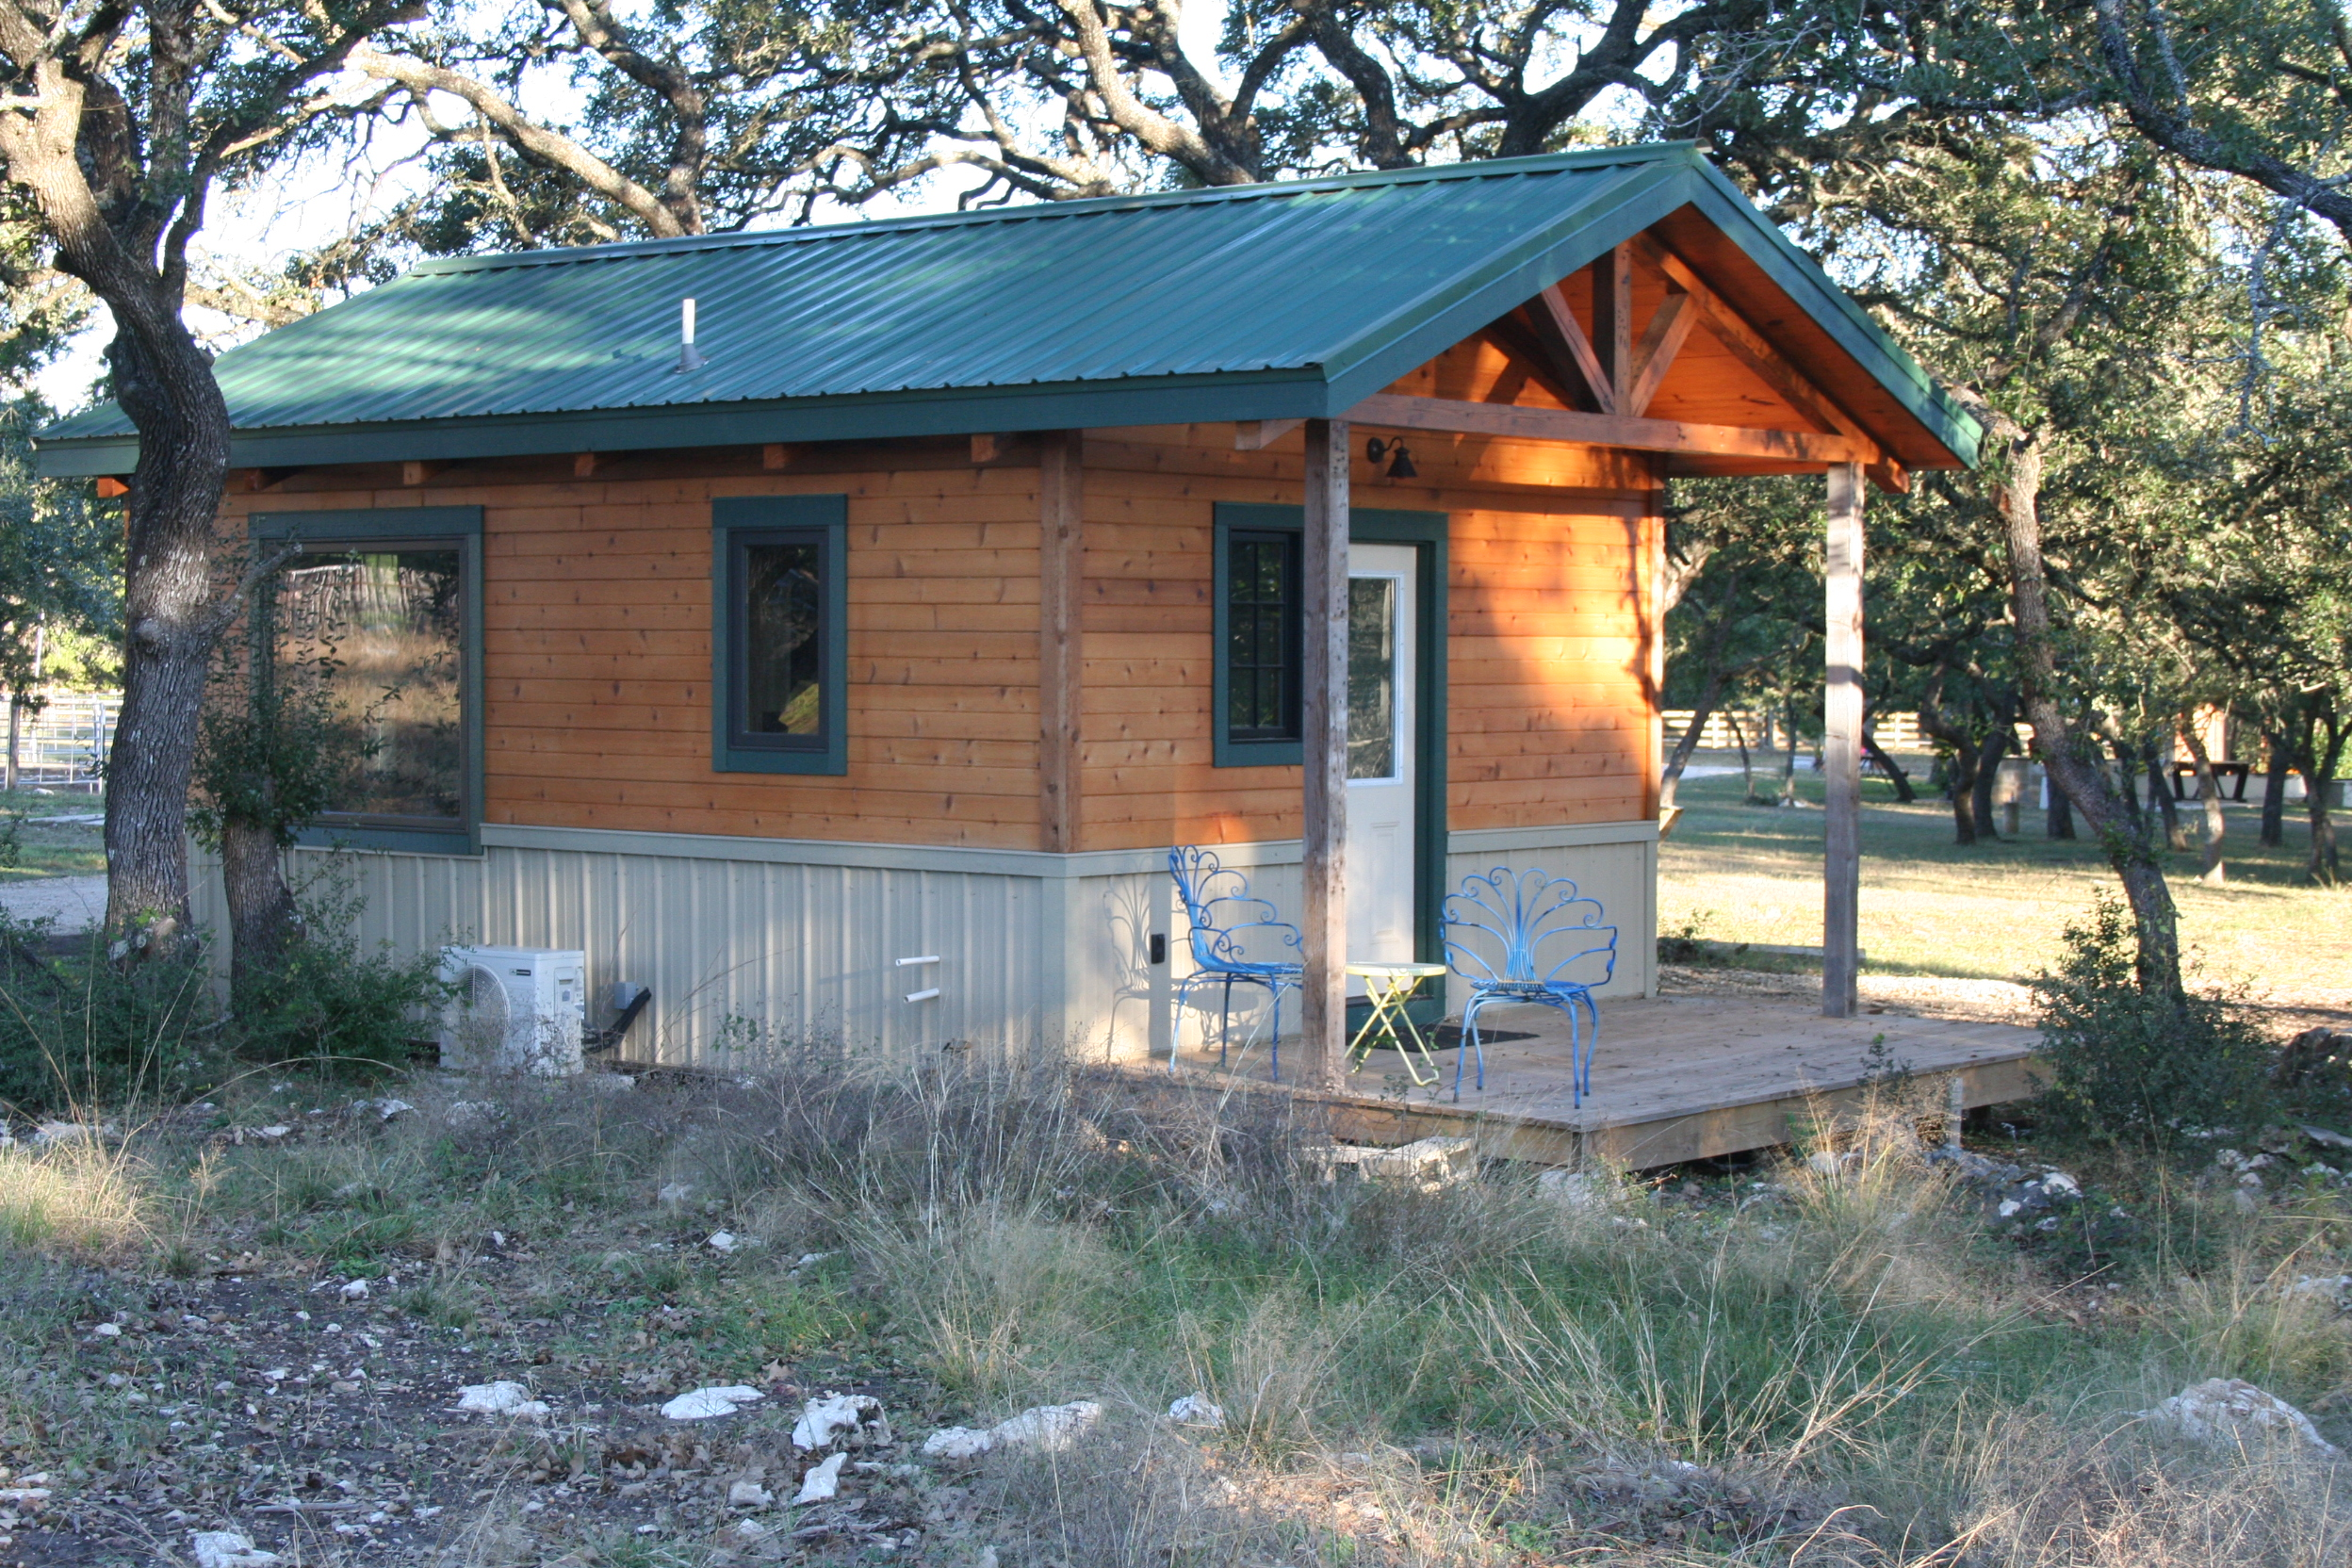 site cc wimberley leeway cottages copyright state home house by